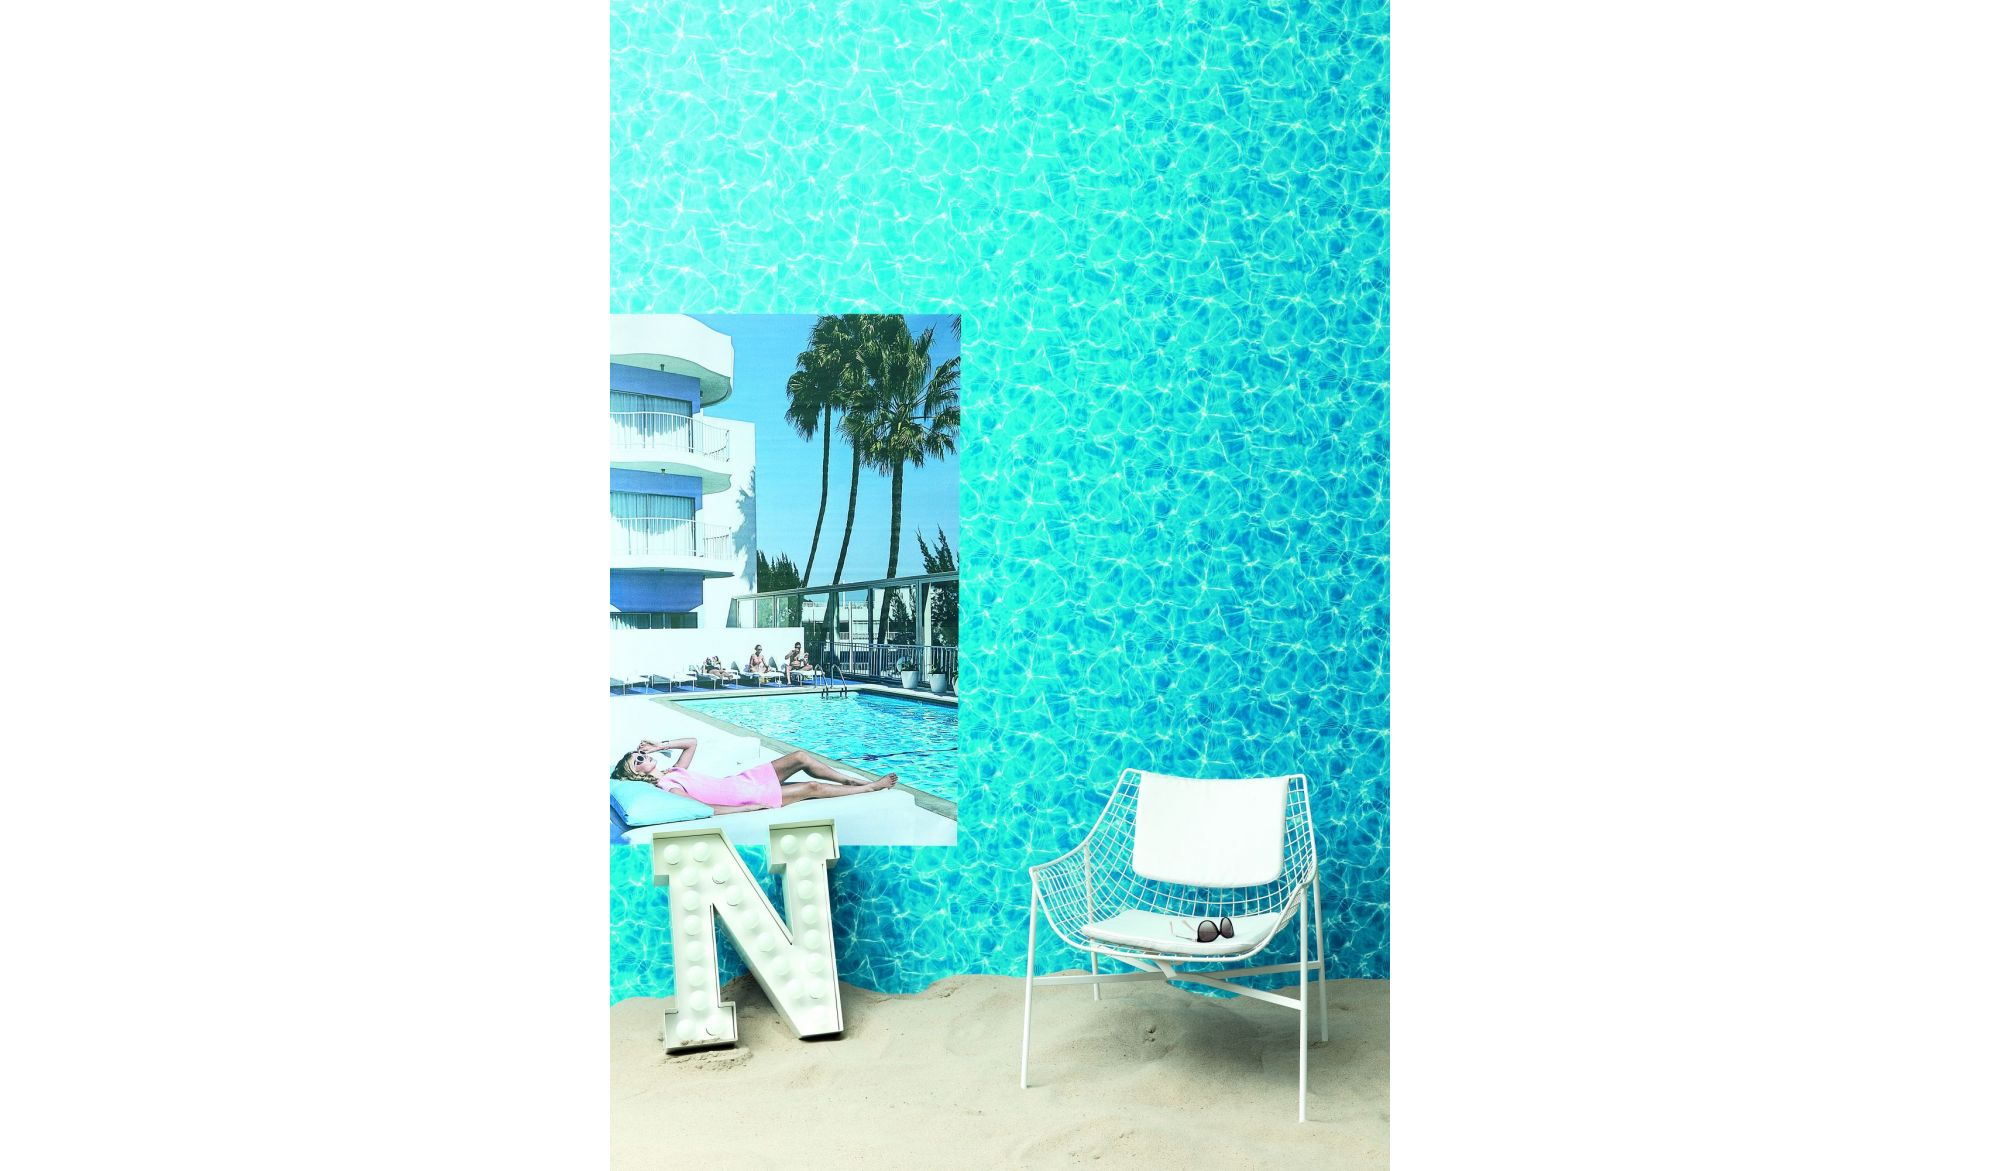 TAPETA WATER CASCADE Denim 45 - Wallpaper alt_tapety_kolor_denim 45 Checked - Texture